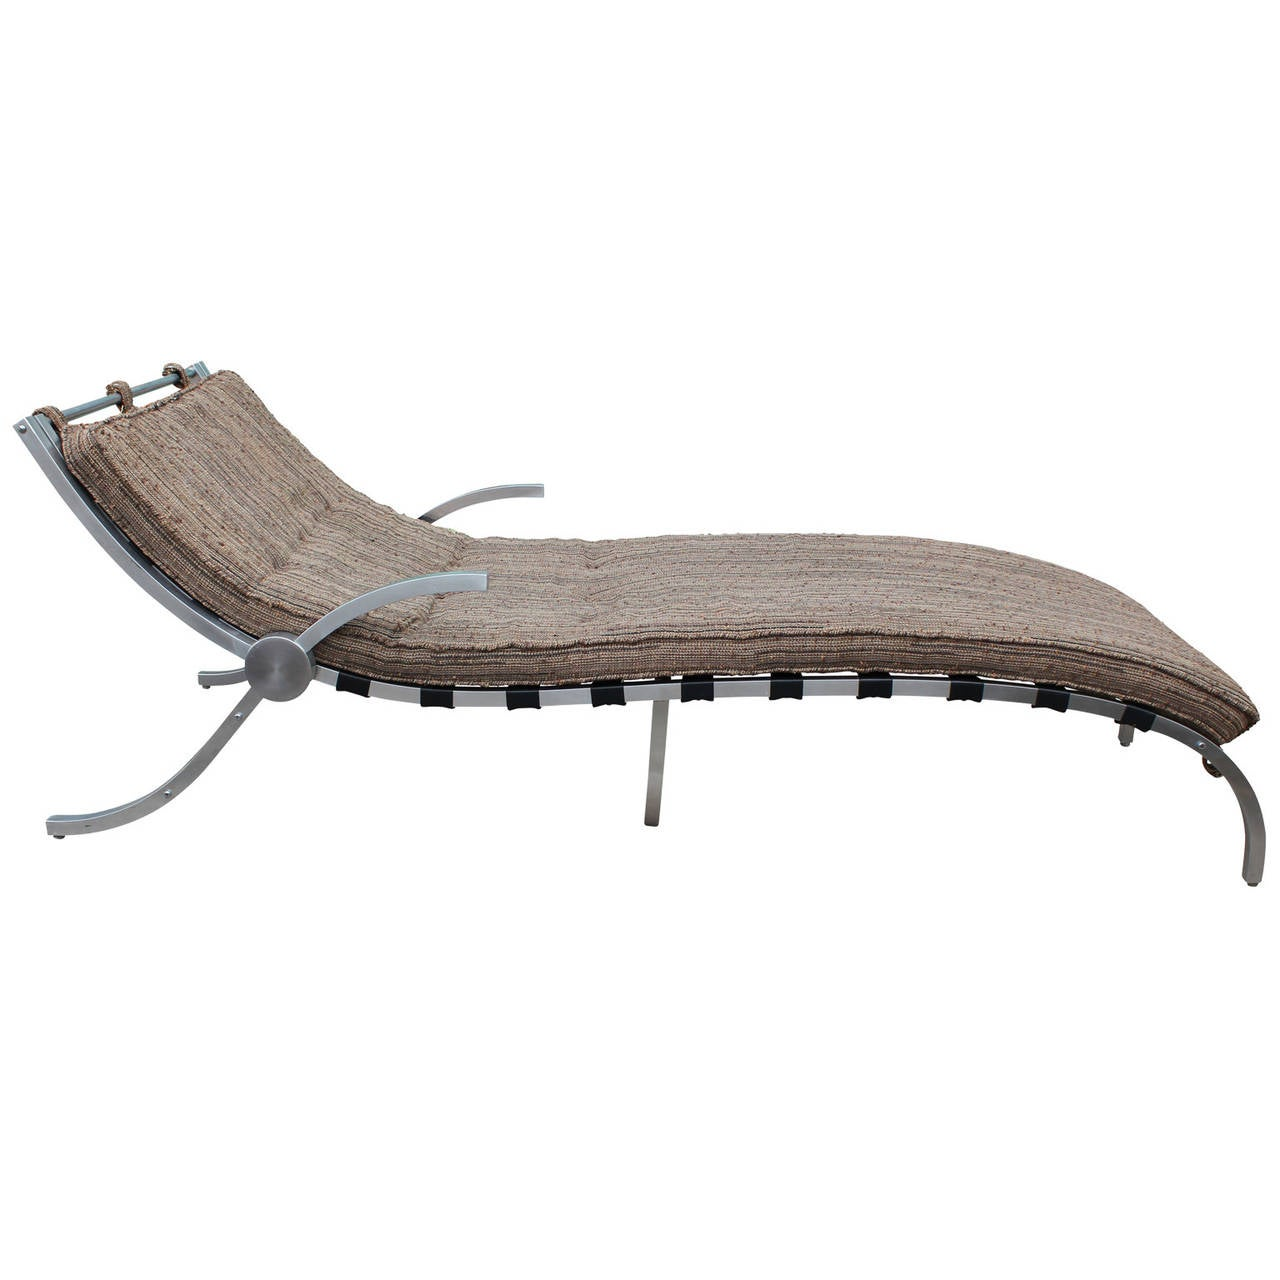 sculptural mid century modern aluminium chaise lounge for sale at 1stdibs. Black Bedroom Furniture Sets. Home Design Ideas